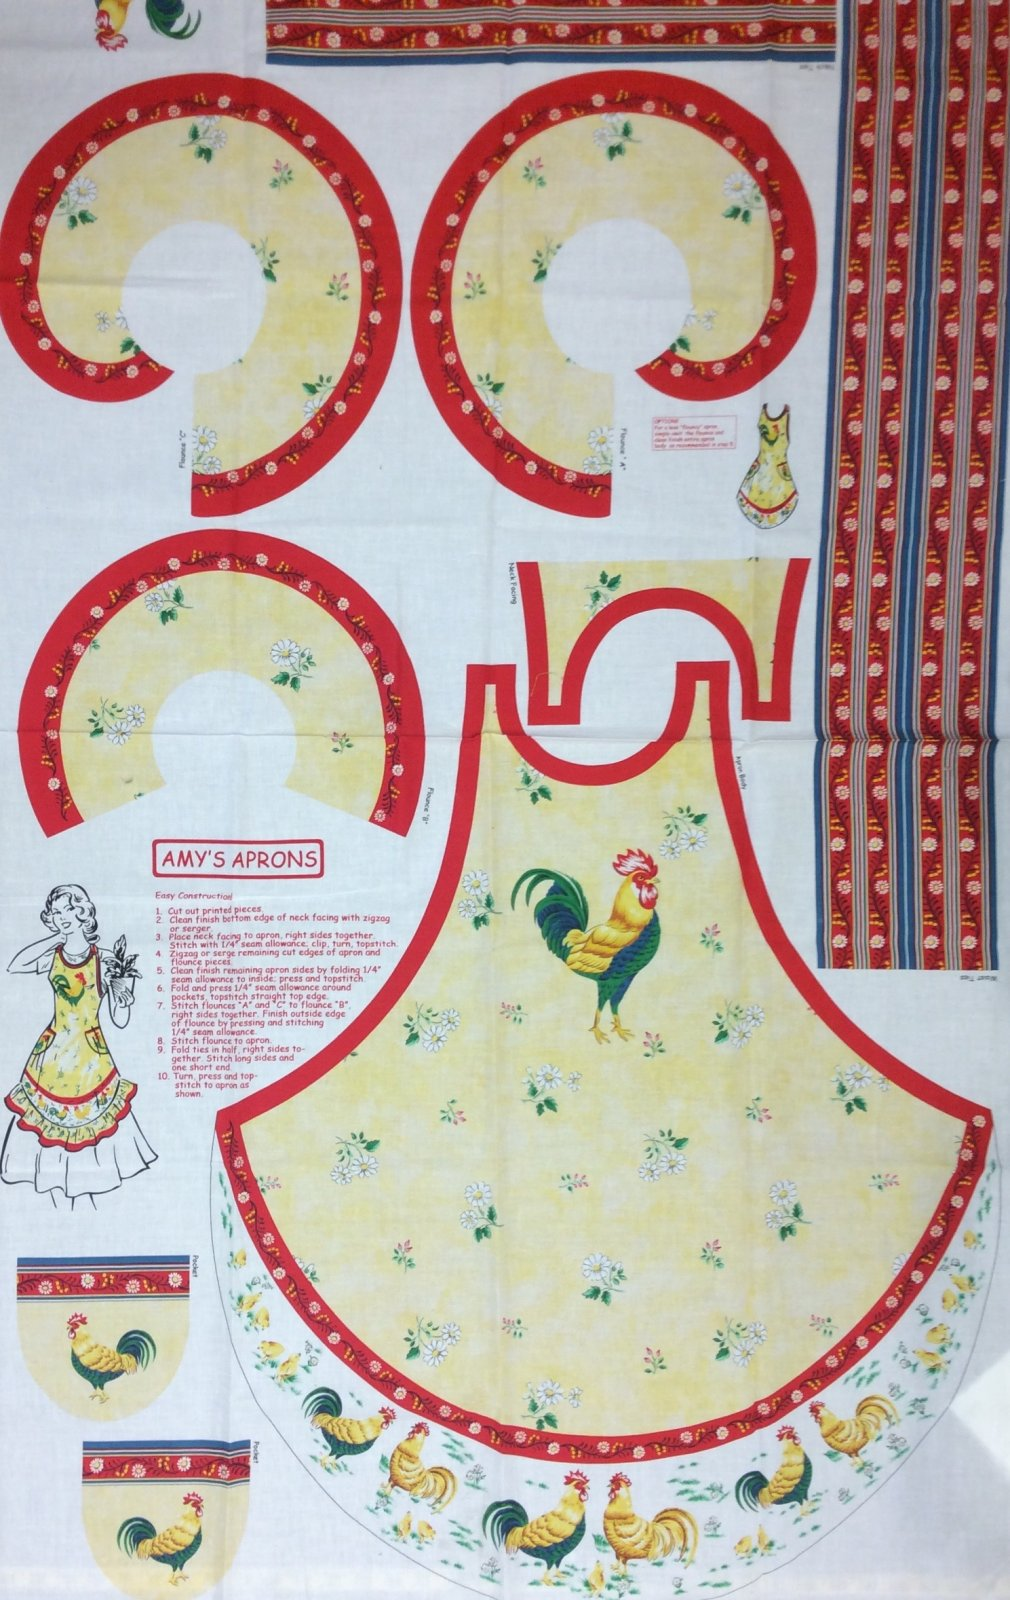 Chicken Country Farm Amy's Aprons Panel Retro Vintage Kitchen Rooster Cotton Fabric Quilt Fabric Apron to Cut out and Sew 782